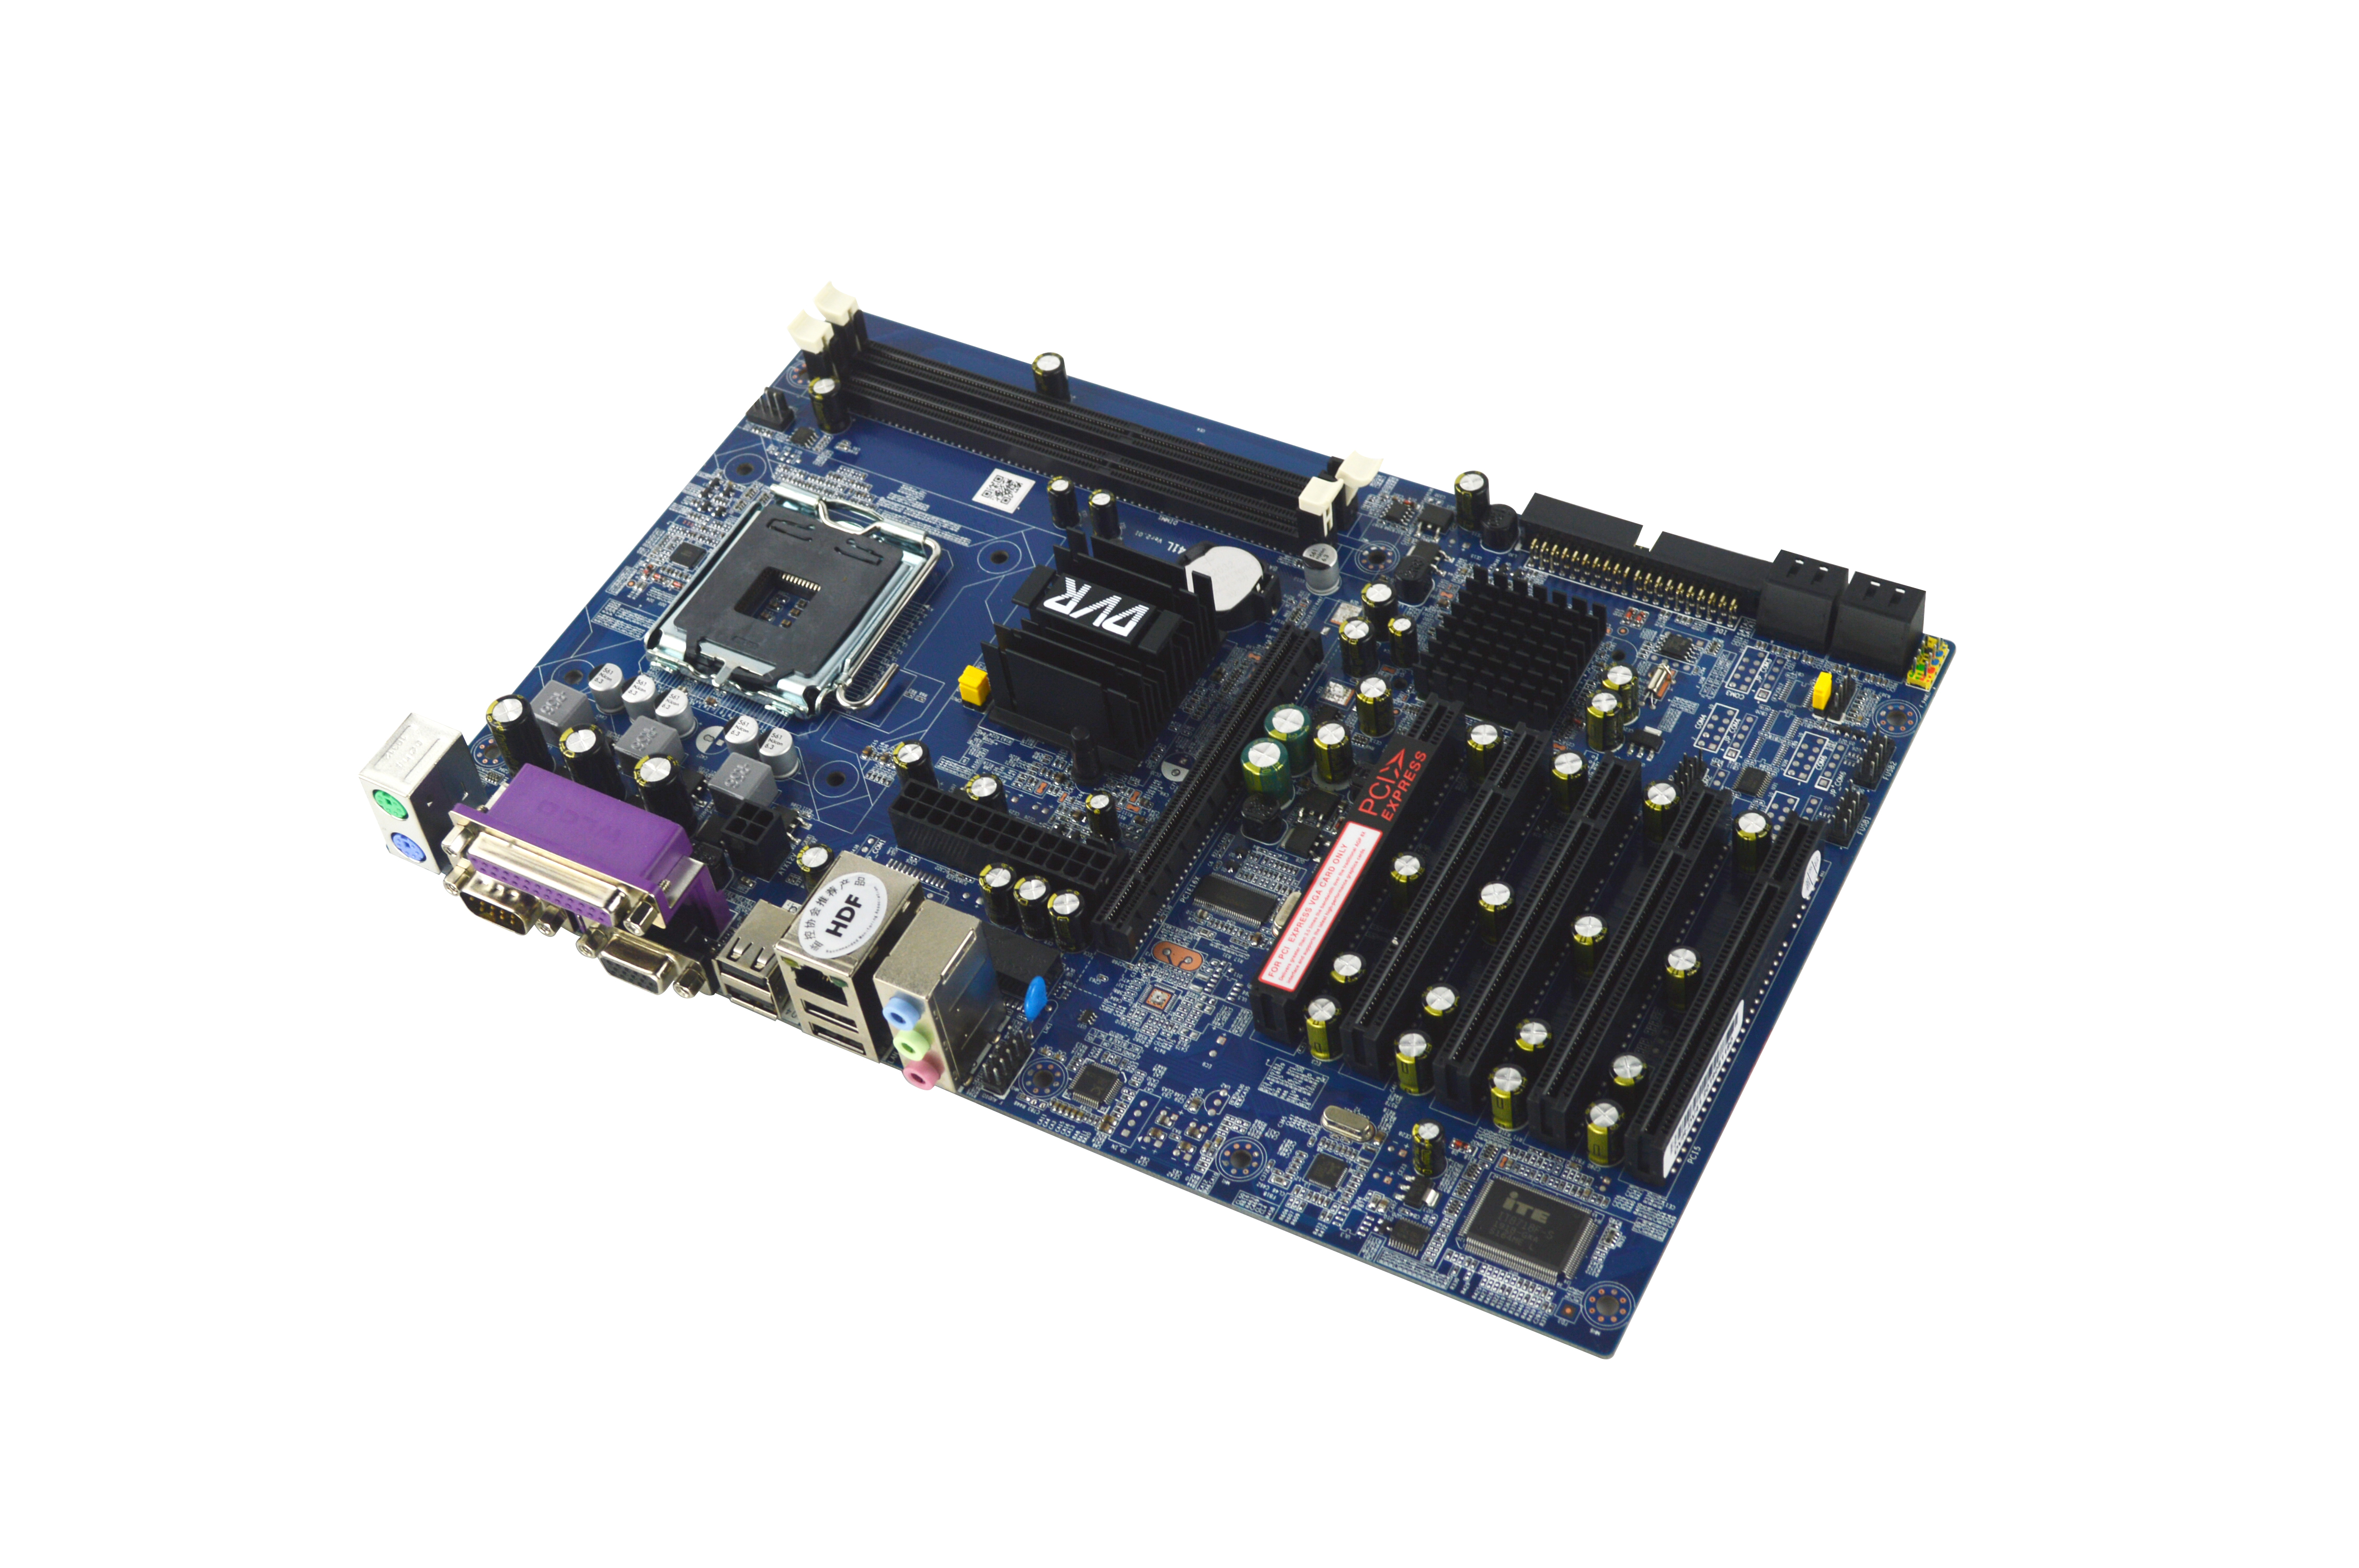 G41 DDR3 industrial Micro ATX motherboard with 5PCI image